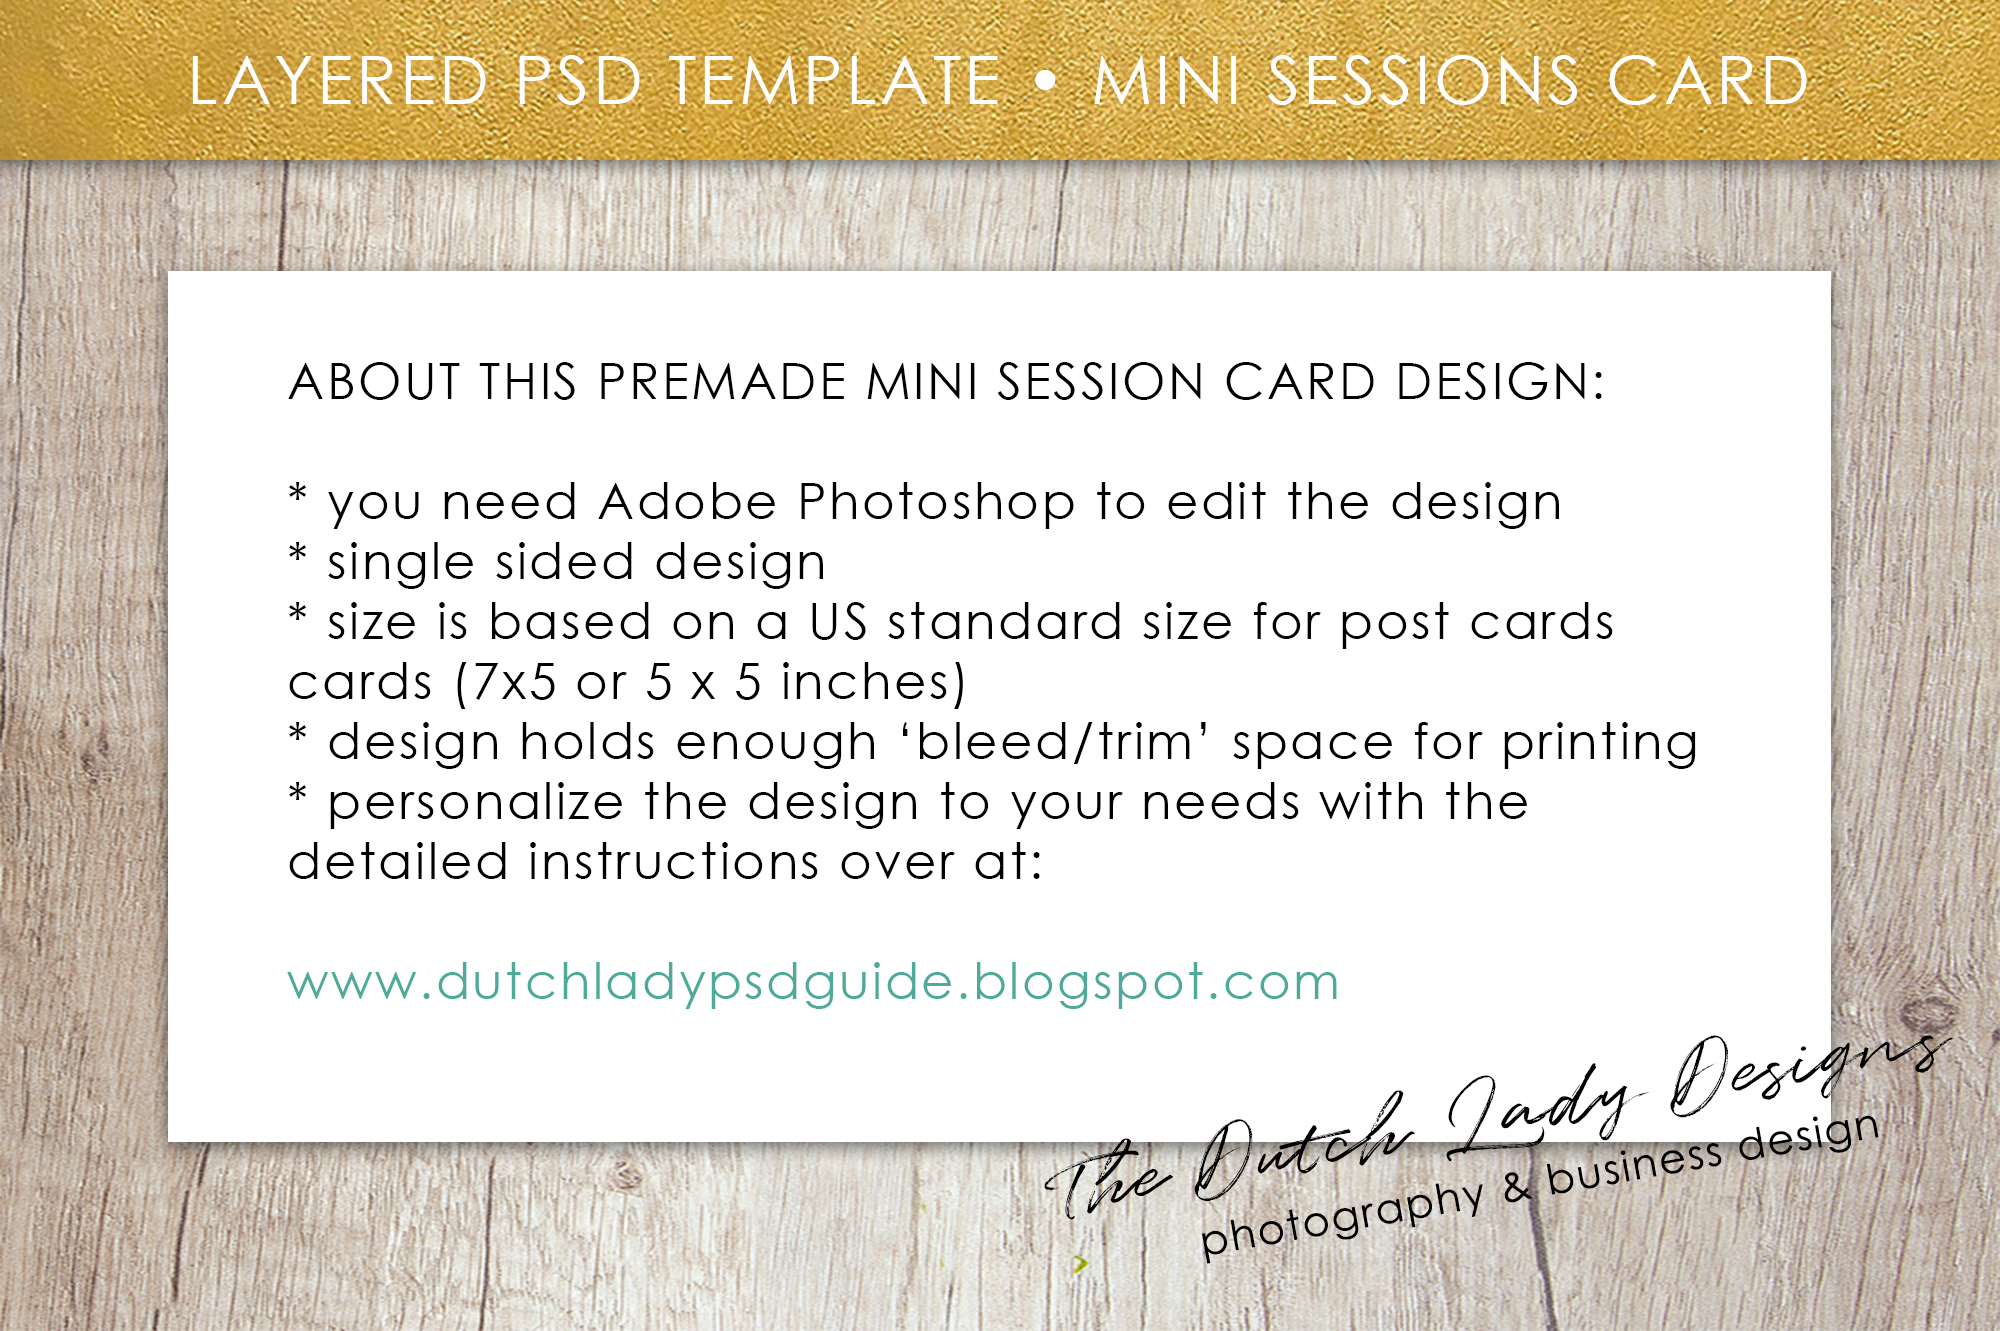 PSD Spring Photo Session Card Template - Design #36 example image 5